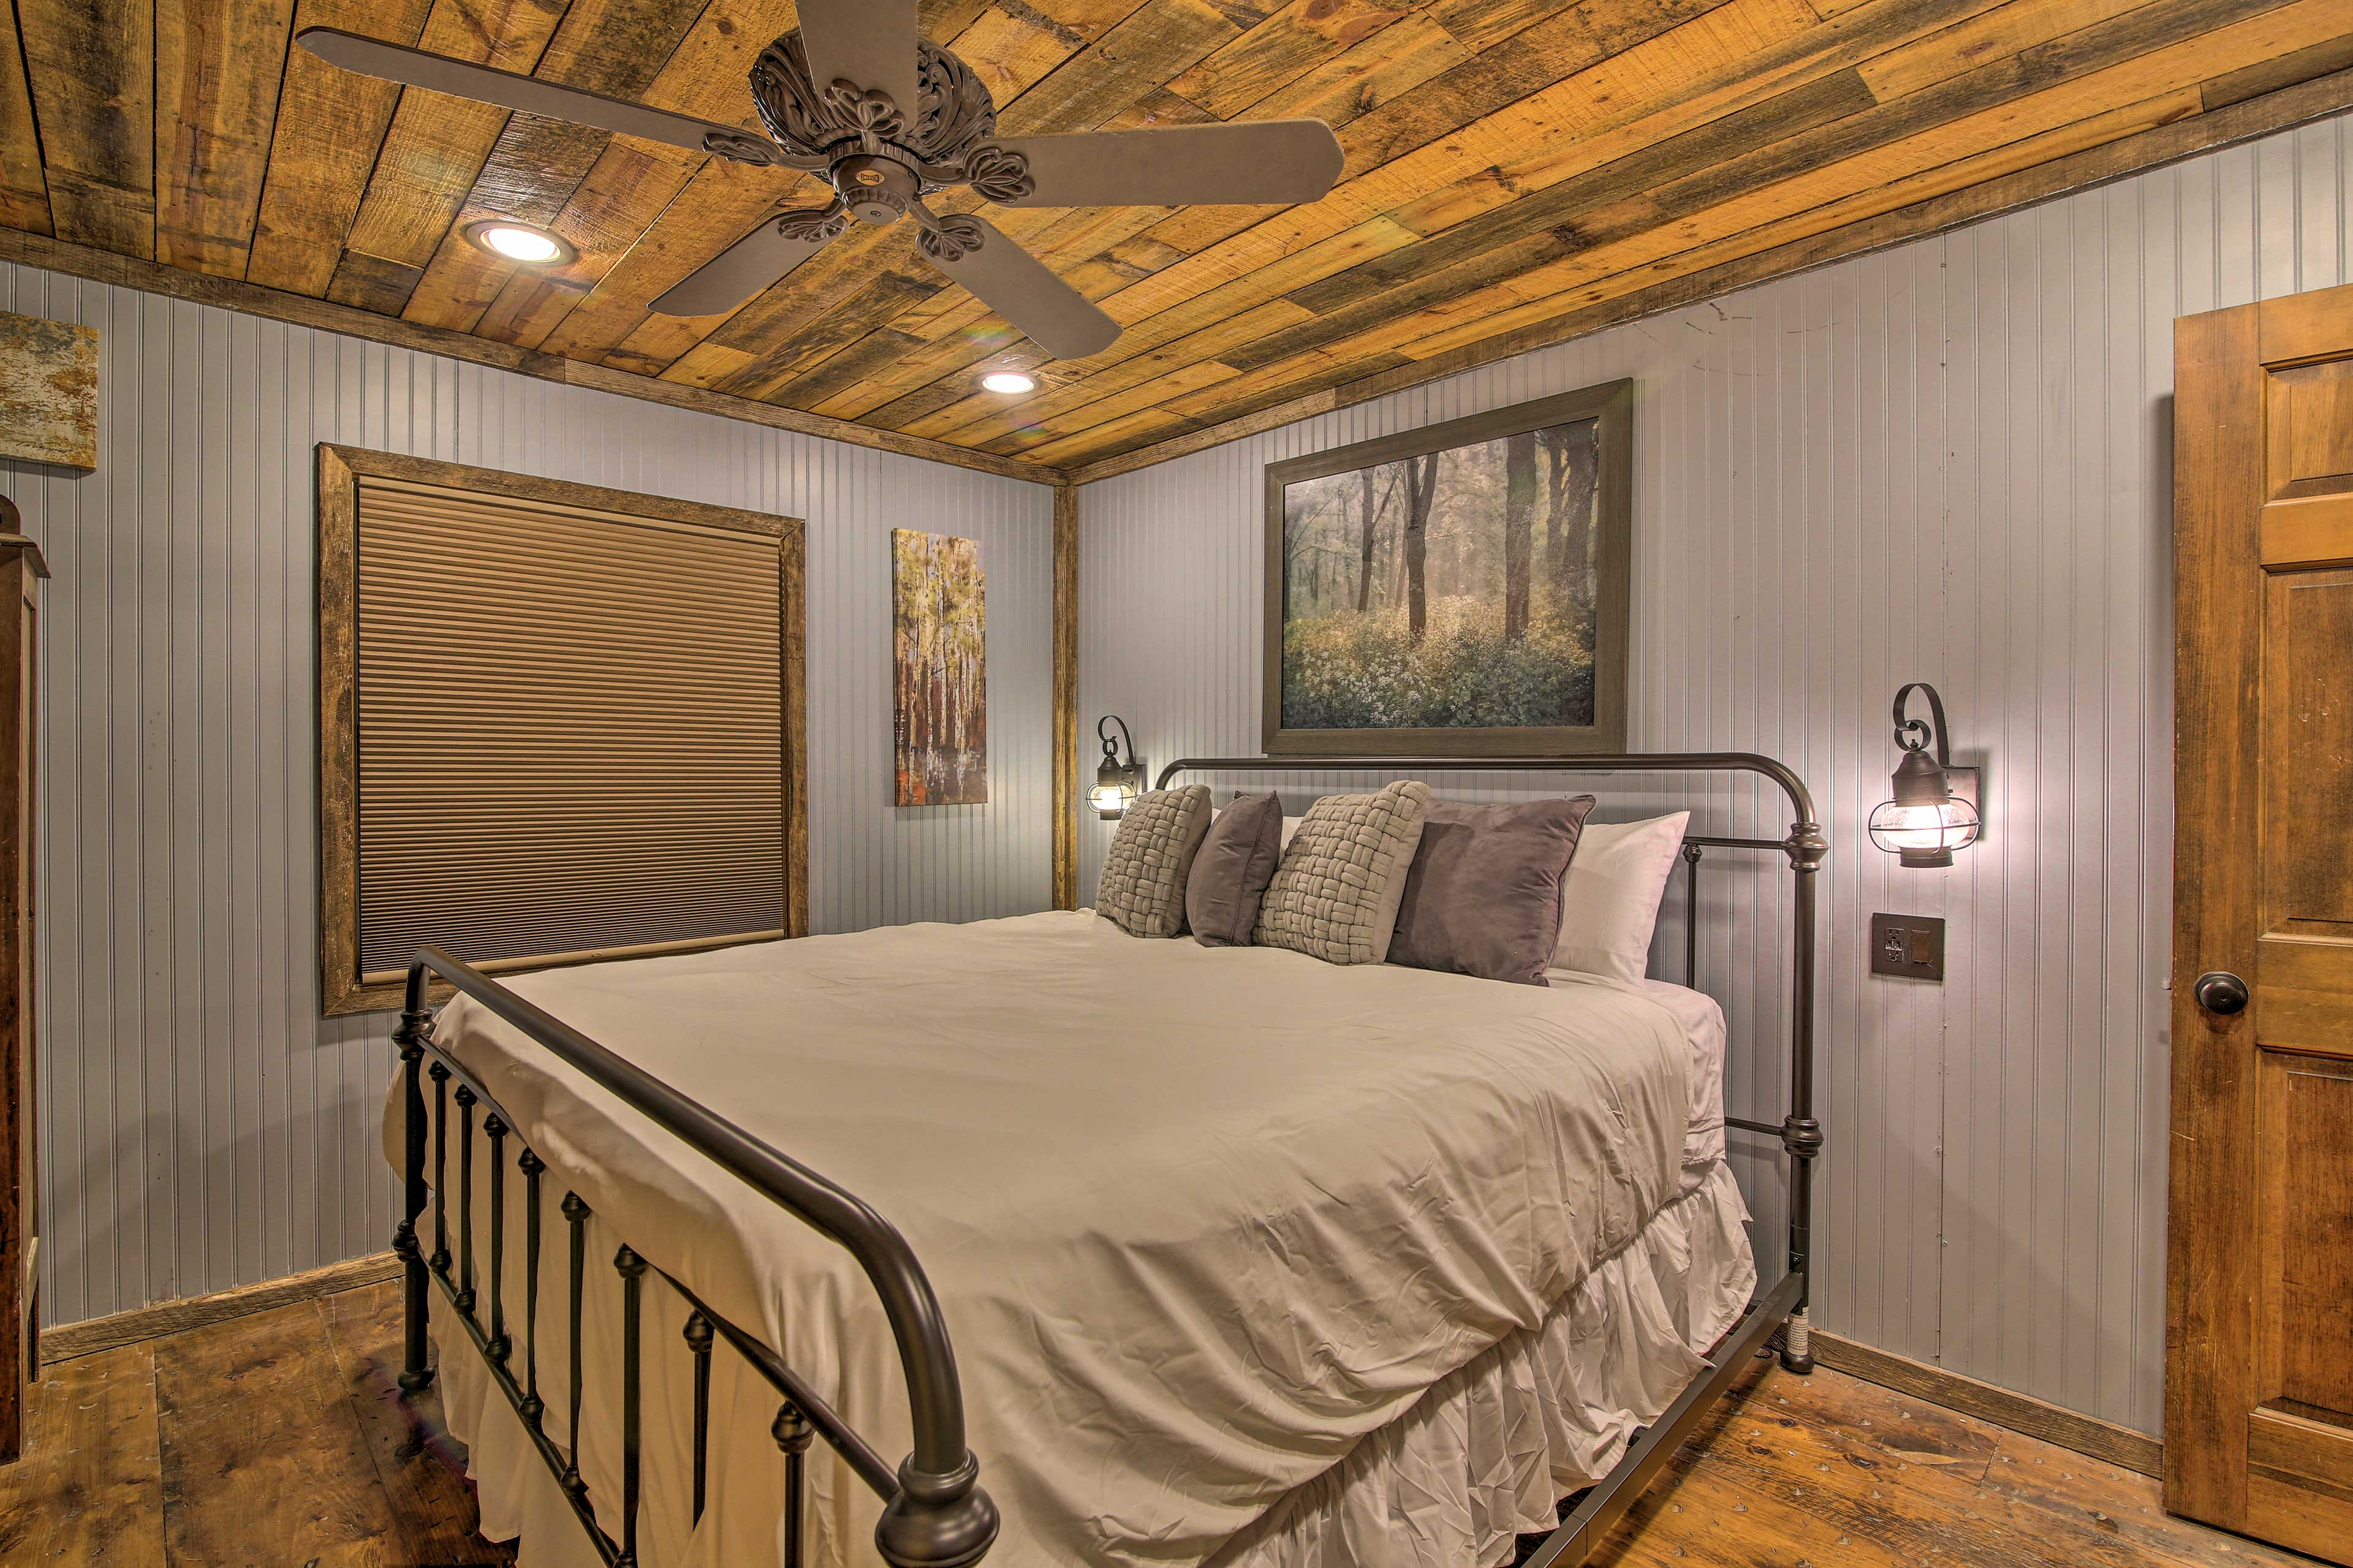 Rest easy each night in the large king bed in the master bedroom.